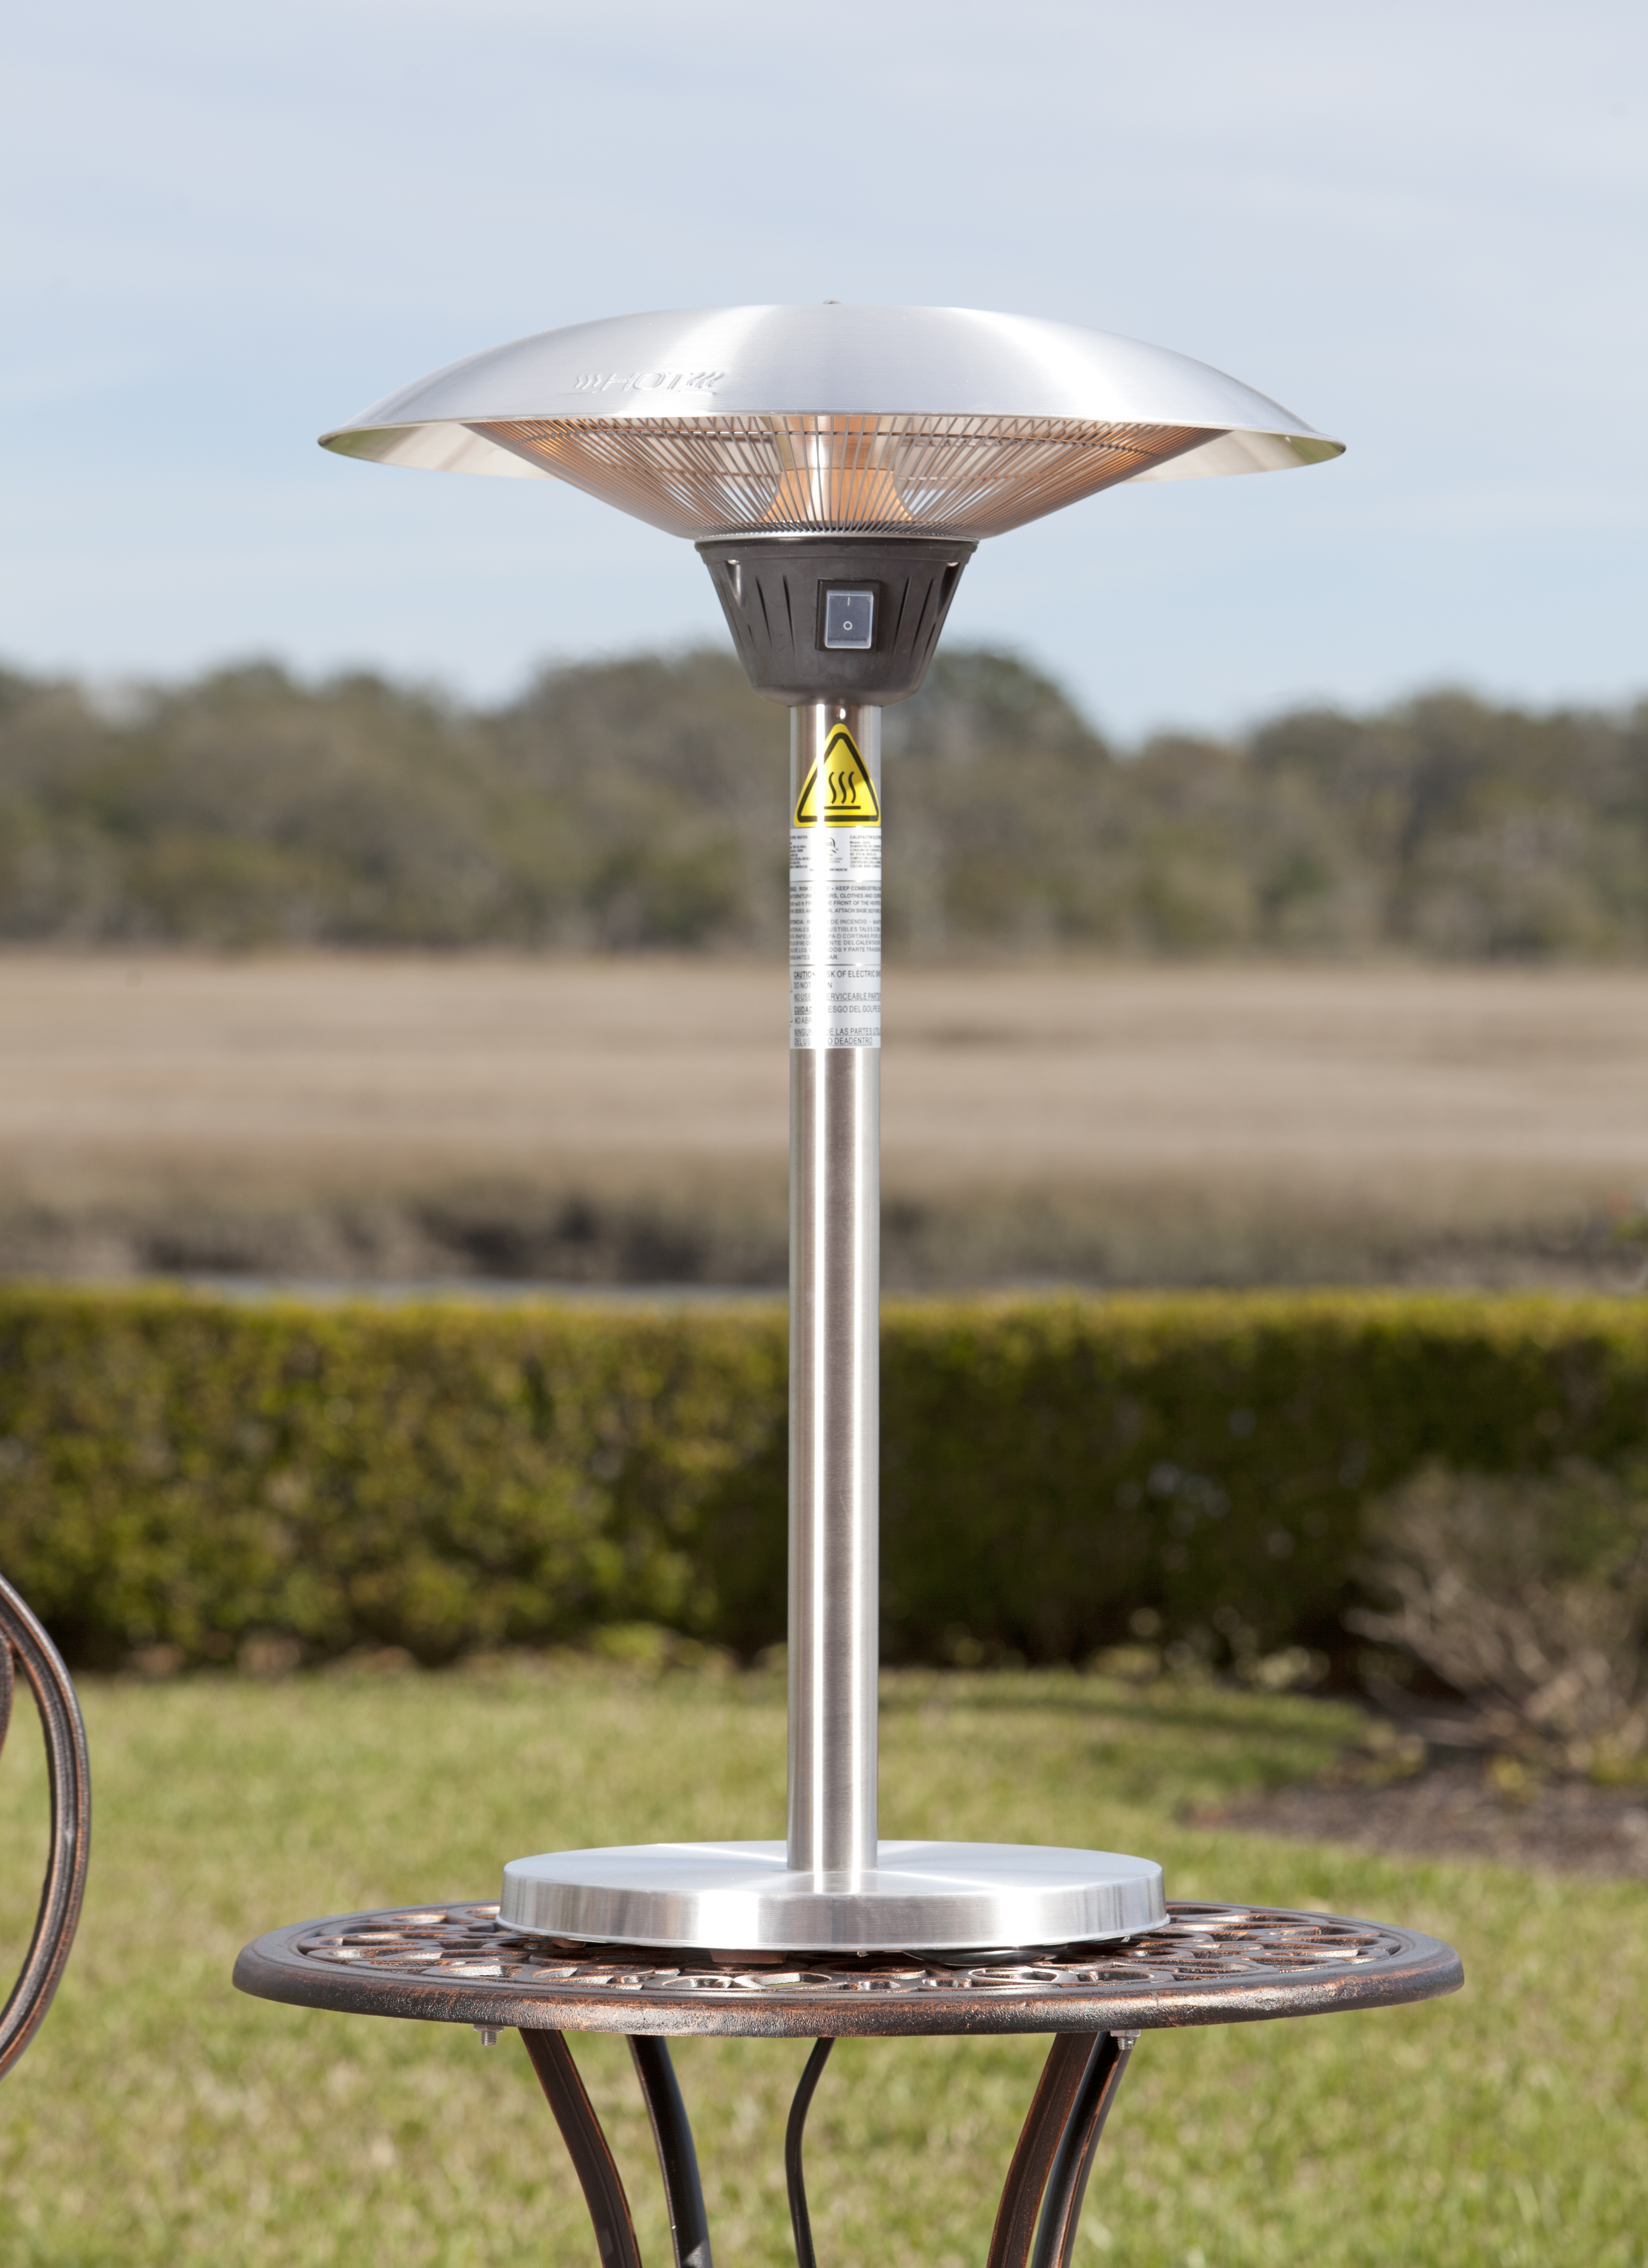 Cimarron Stainless Steel Table Top Halogen Patio Heater Well